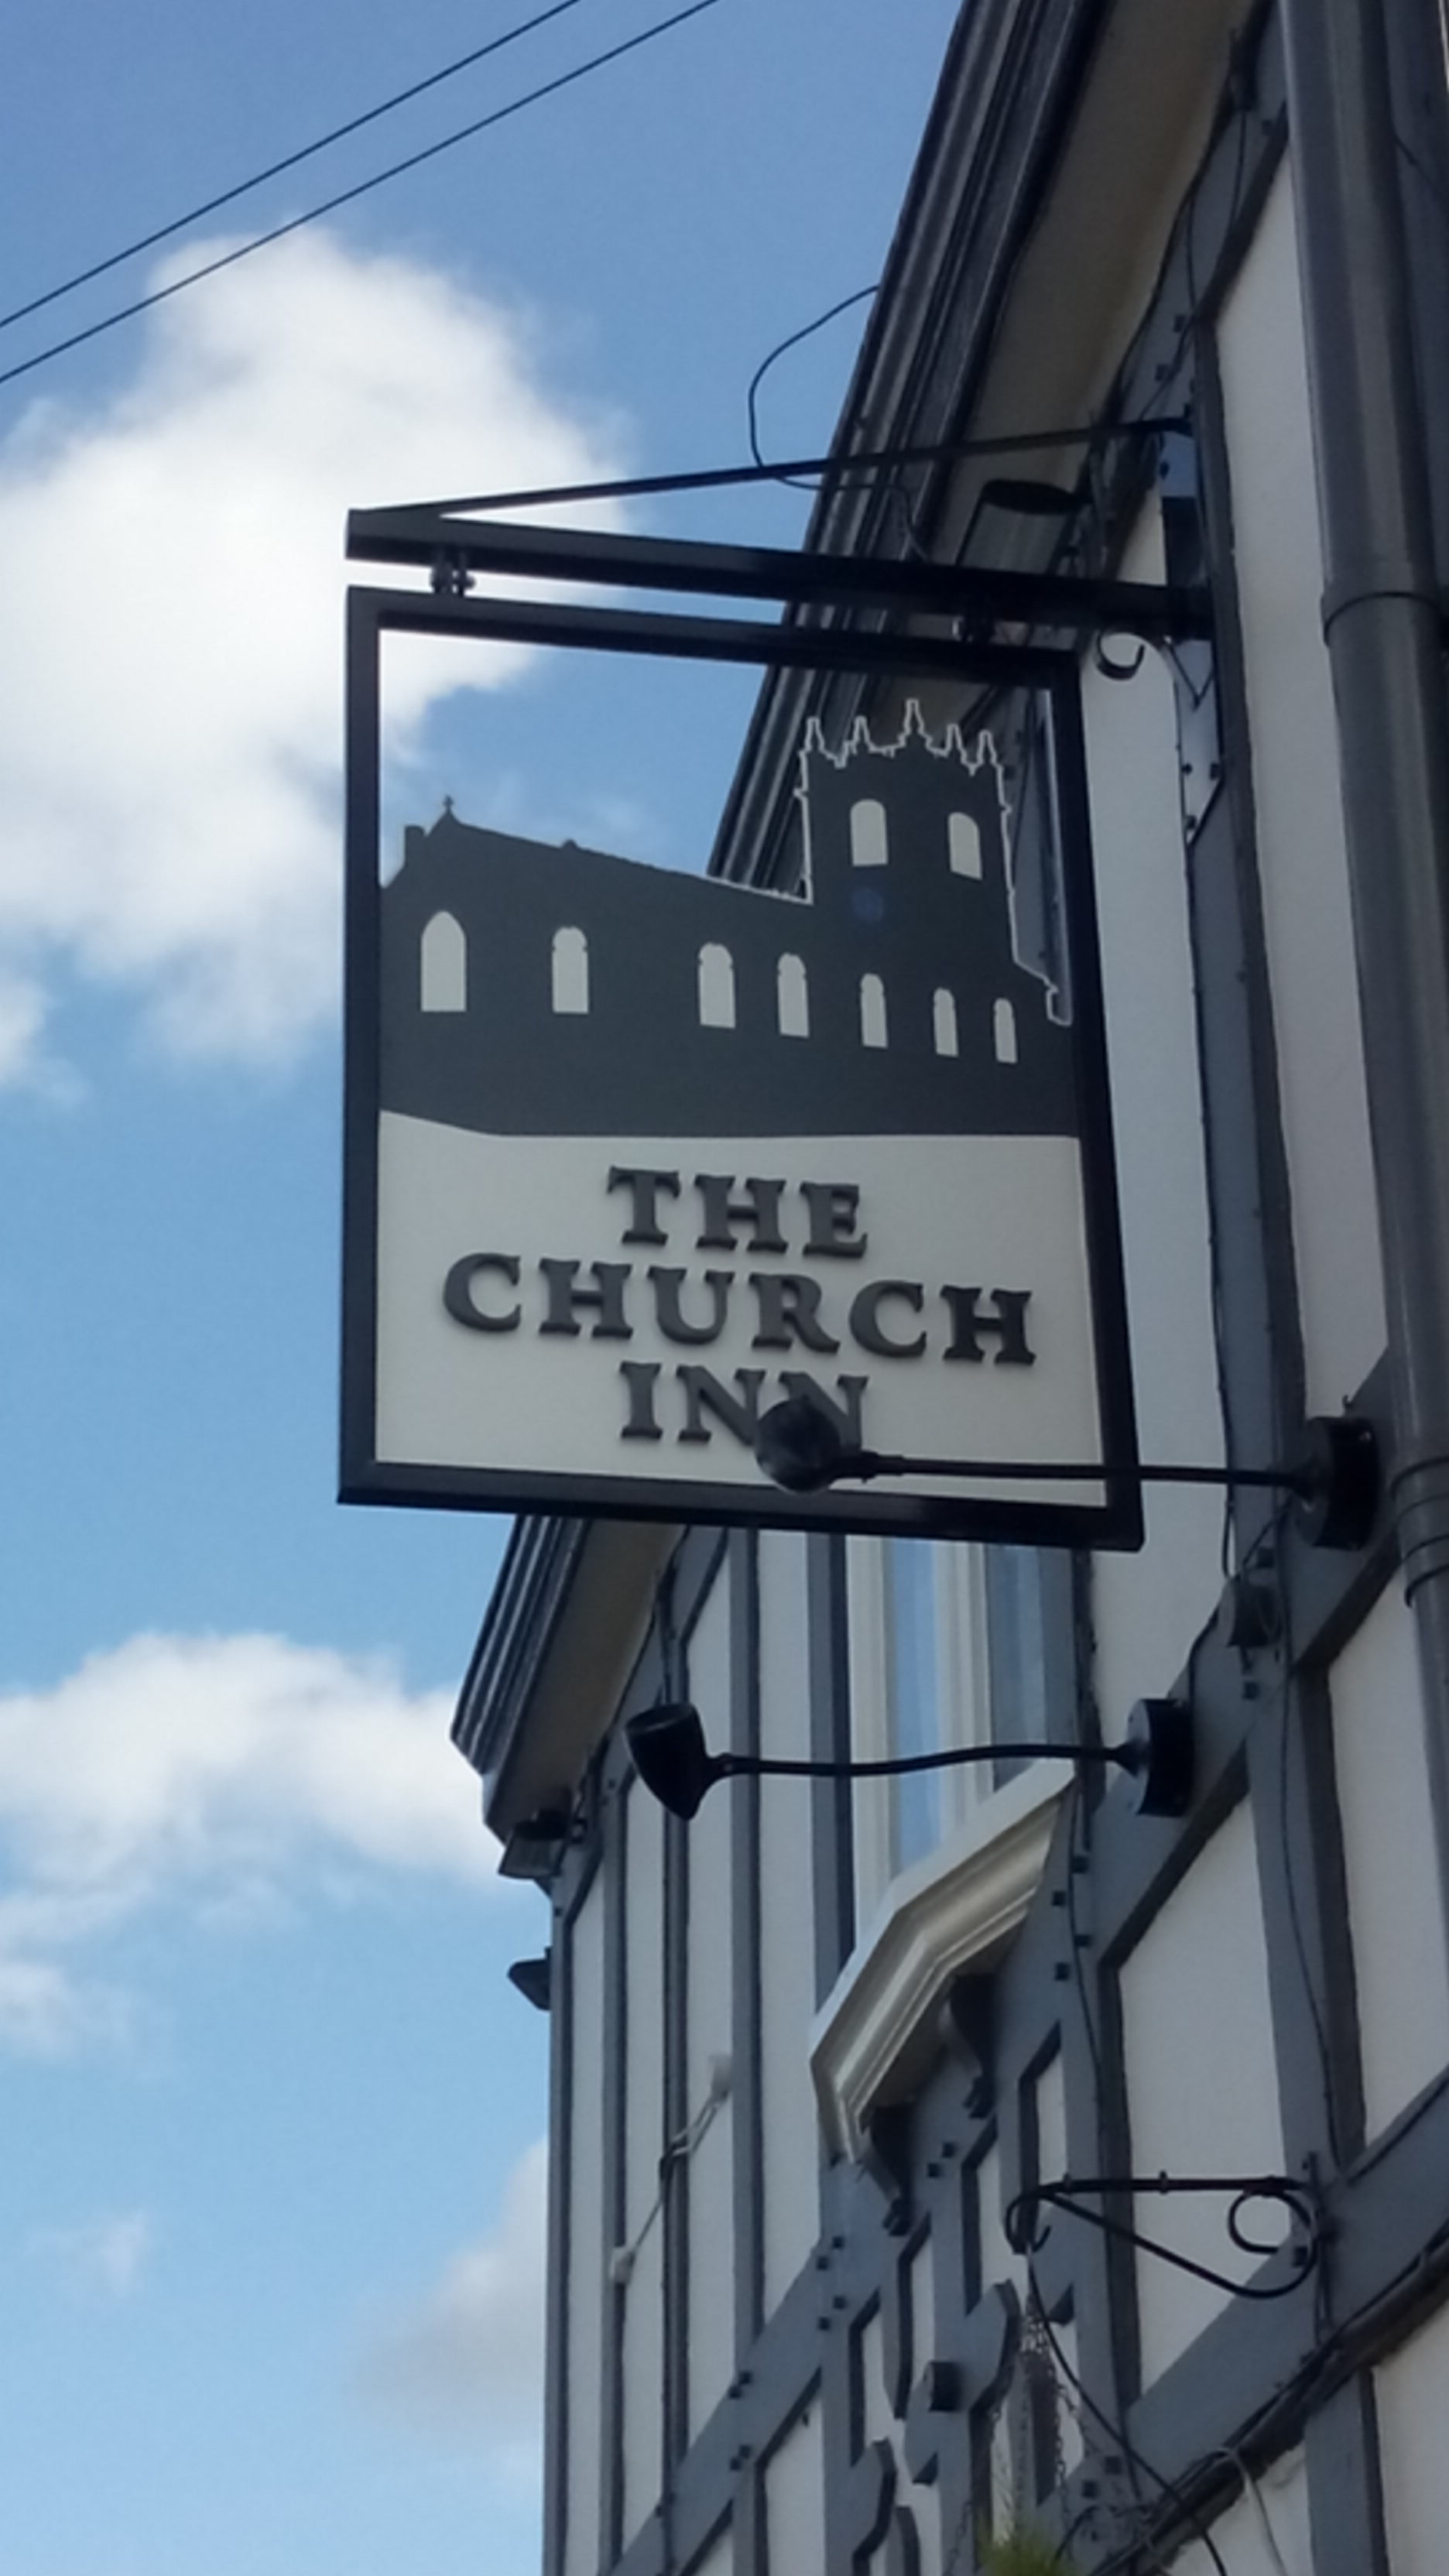 church inn flixton